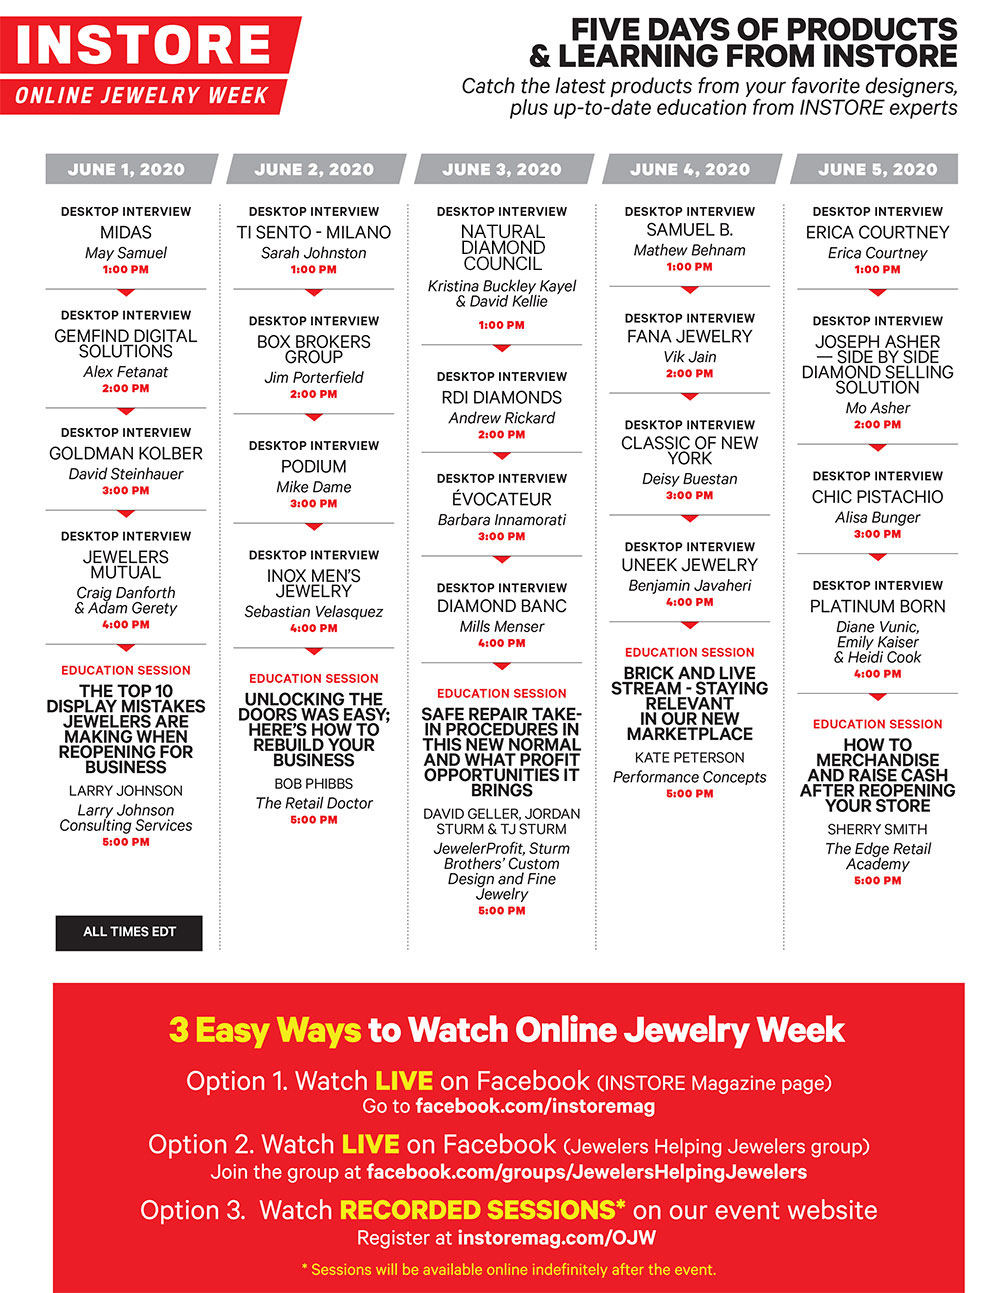 INSTORE Online Jewelry Week: Vegas Jewelry Shows … in Your Living Room